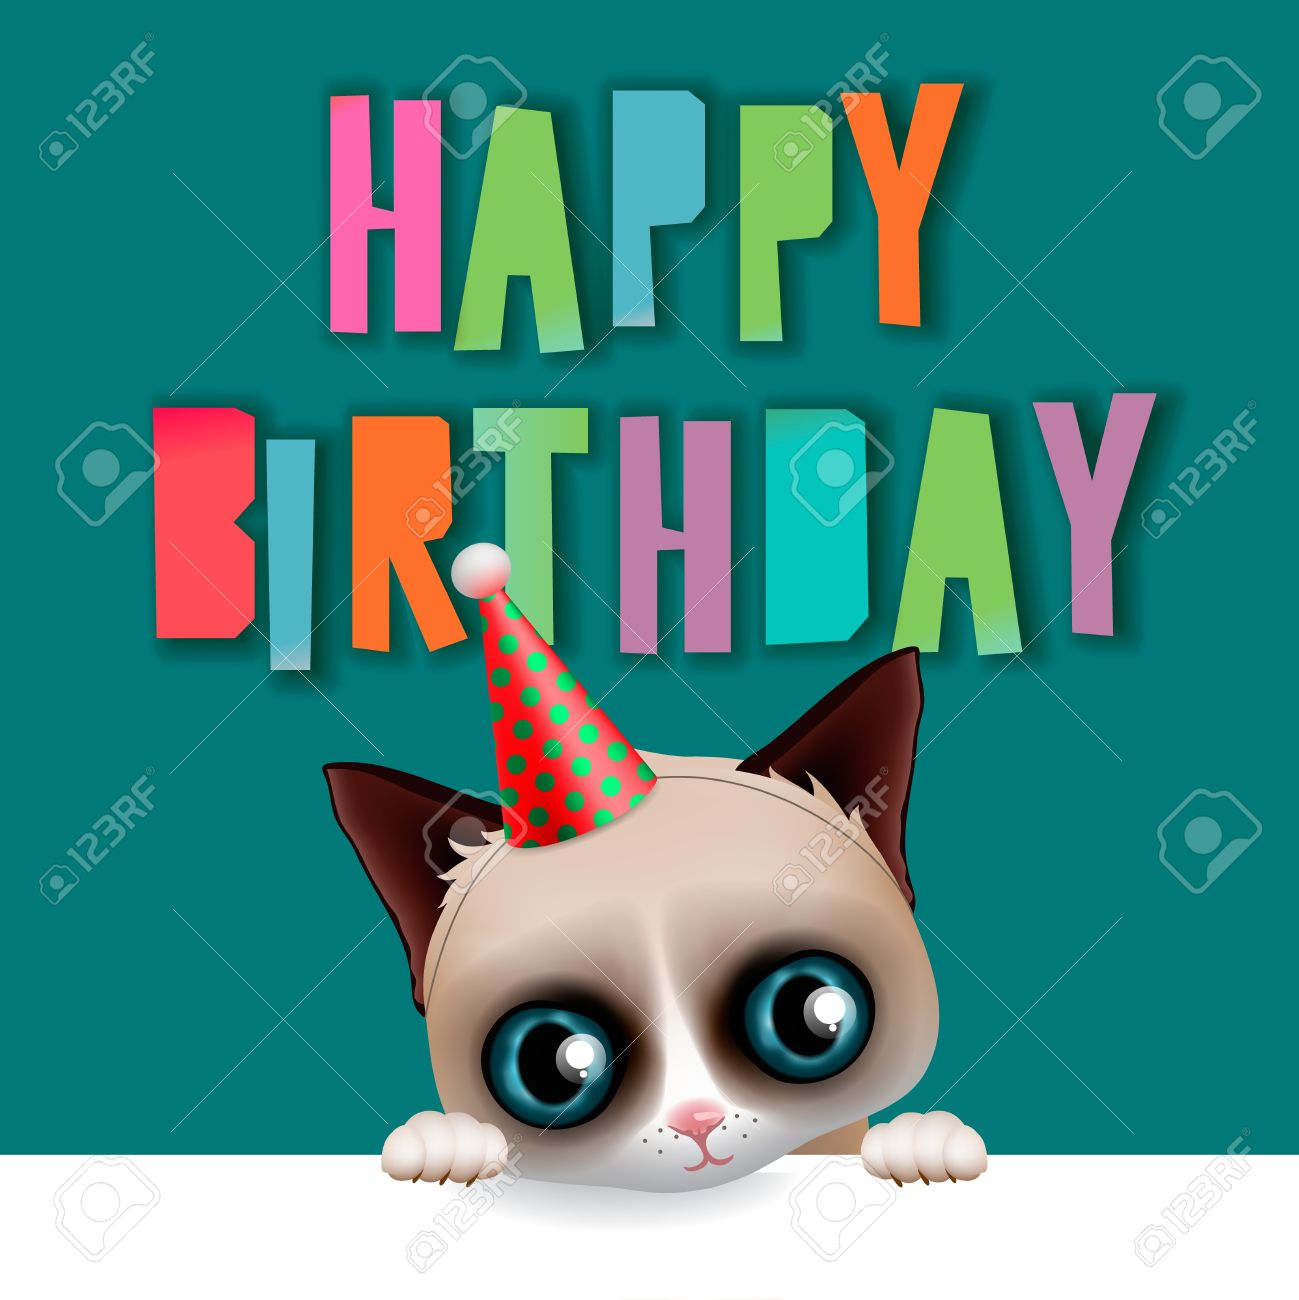 Cute happy birthday card with fun grumpy cat hipster design cute happy birthday card with fun grumpy cat hipster design vector illustration stock bookmarktalkfo Image collections